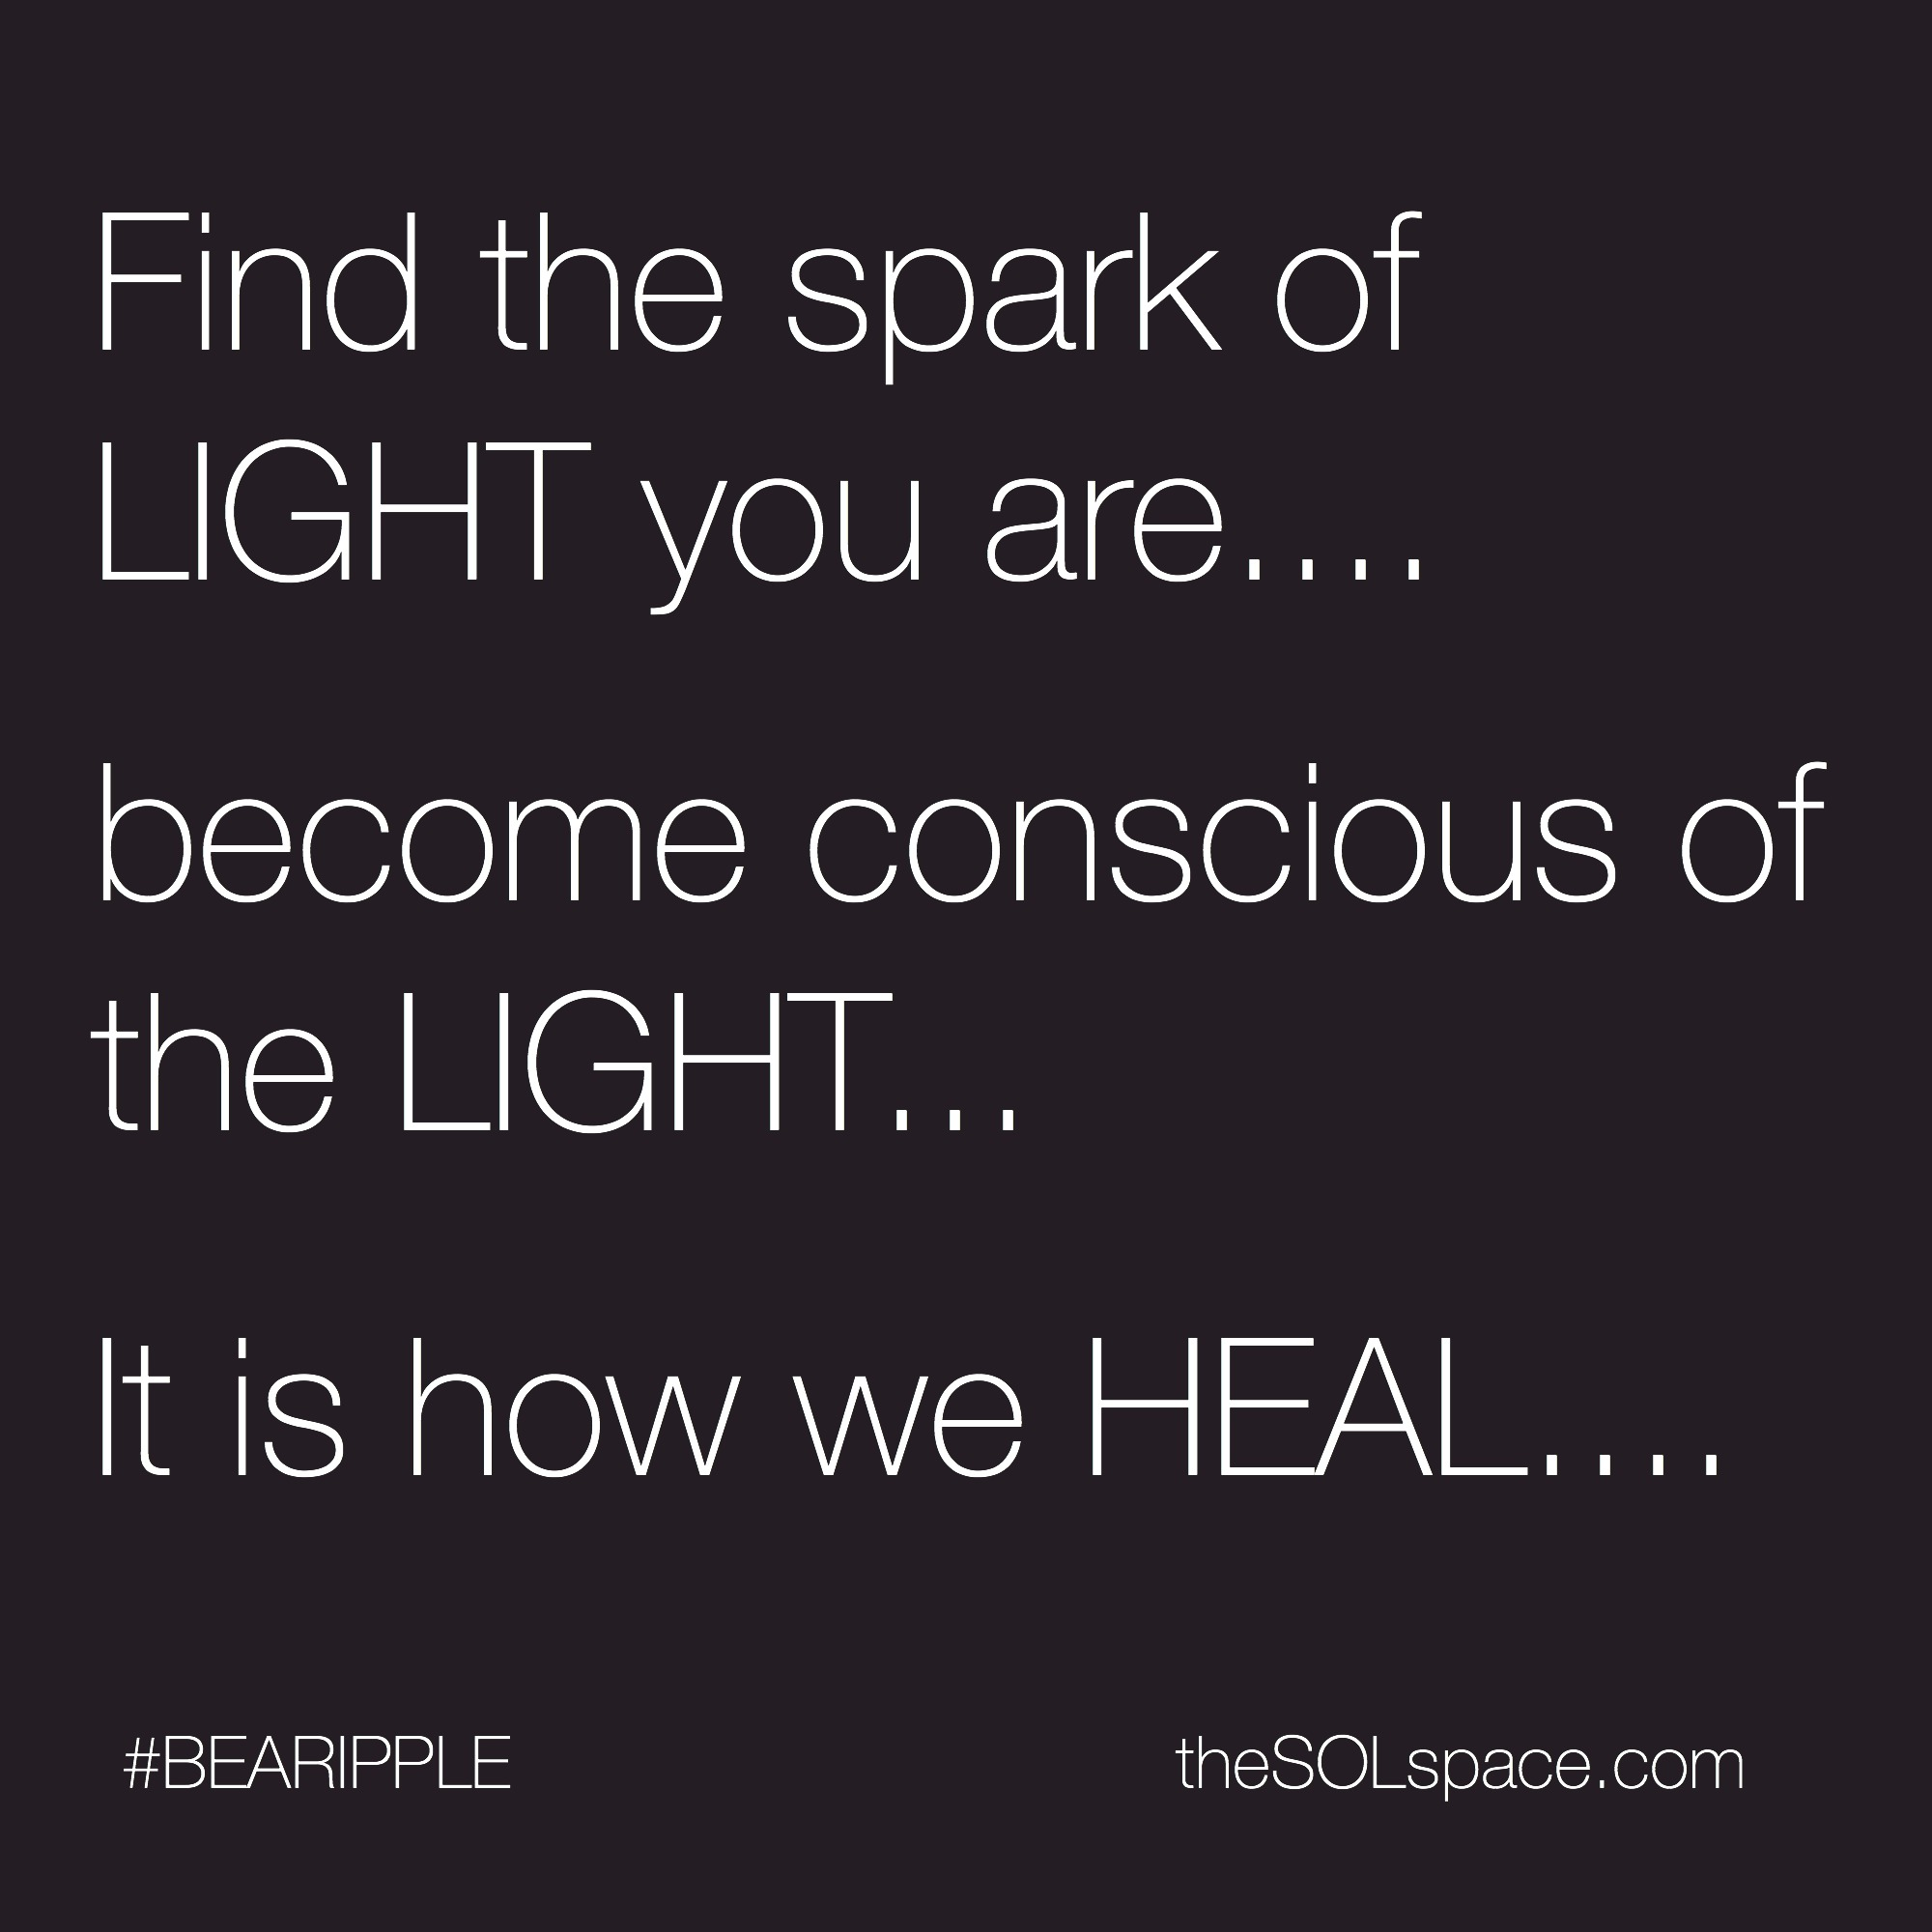 #BeARipple...Find the spark of LIGHT you are...become conscious of the LIGHT..it is how we HEAL @theSOLspace